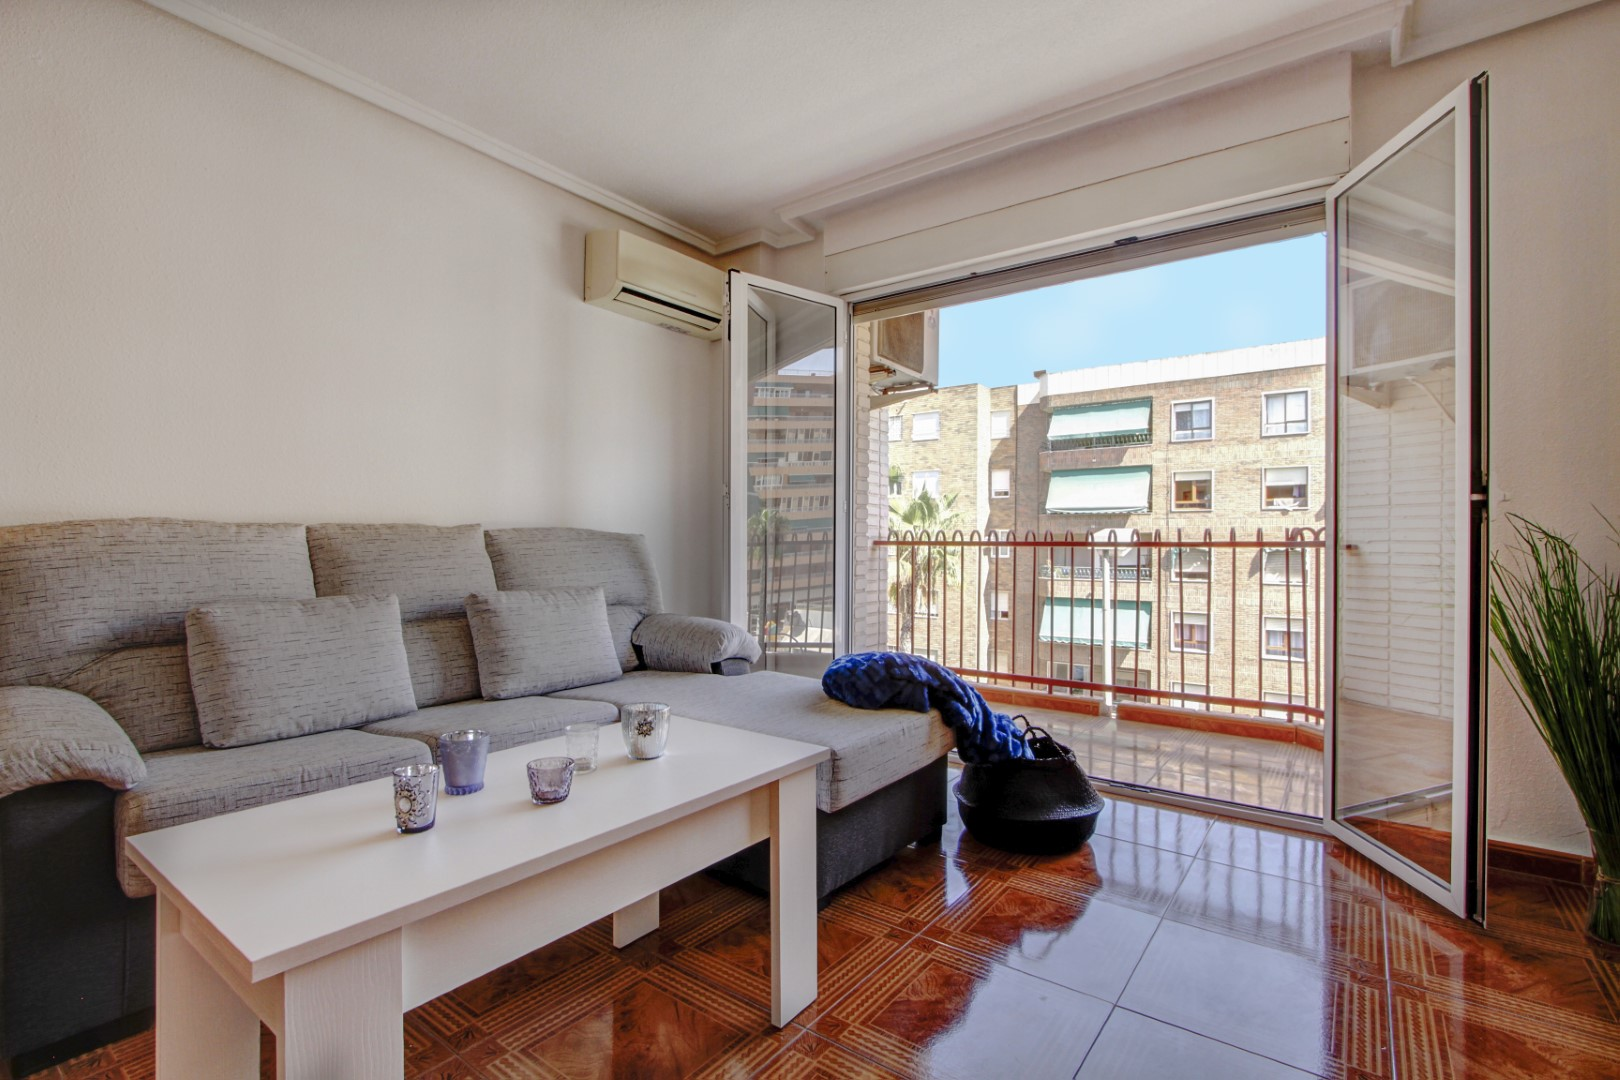 Refreshed and newly furnished apartment for sale near the beach del Acequión in Torrevieja.